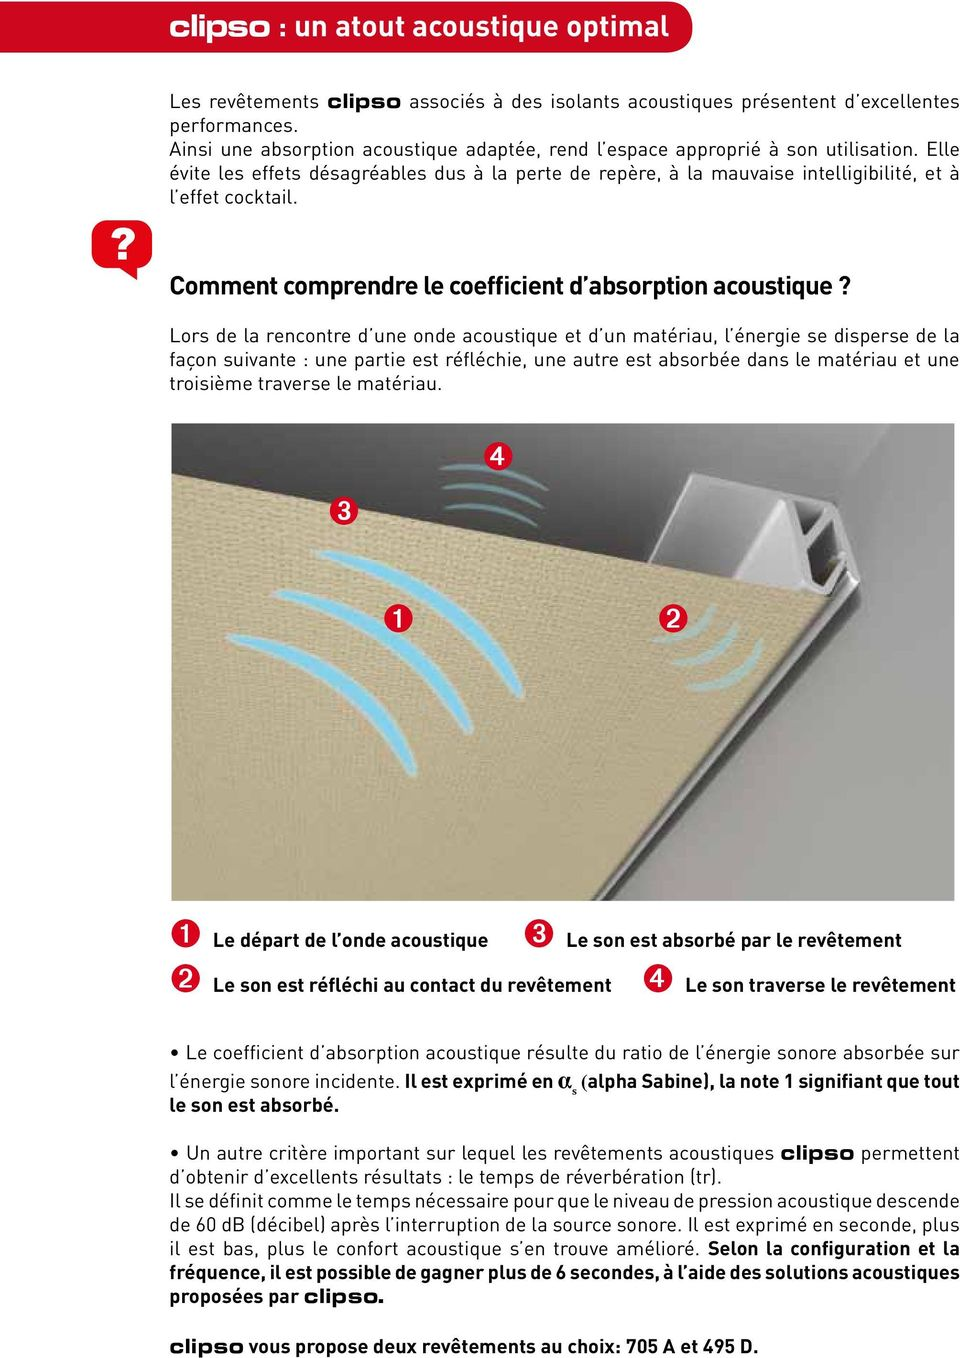 Comment comprendre le coefficient d absorption acoustique?